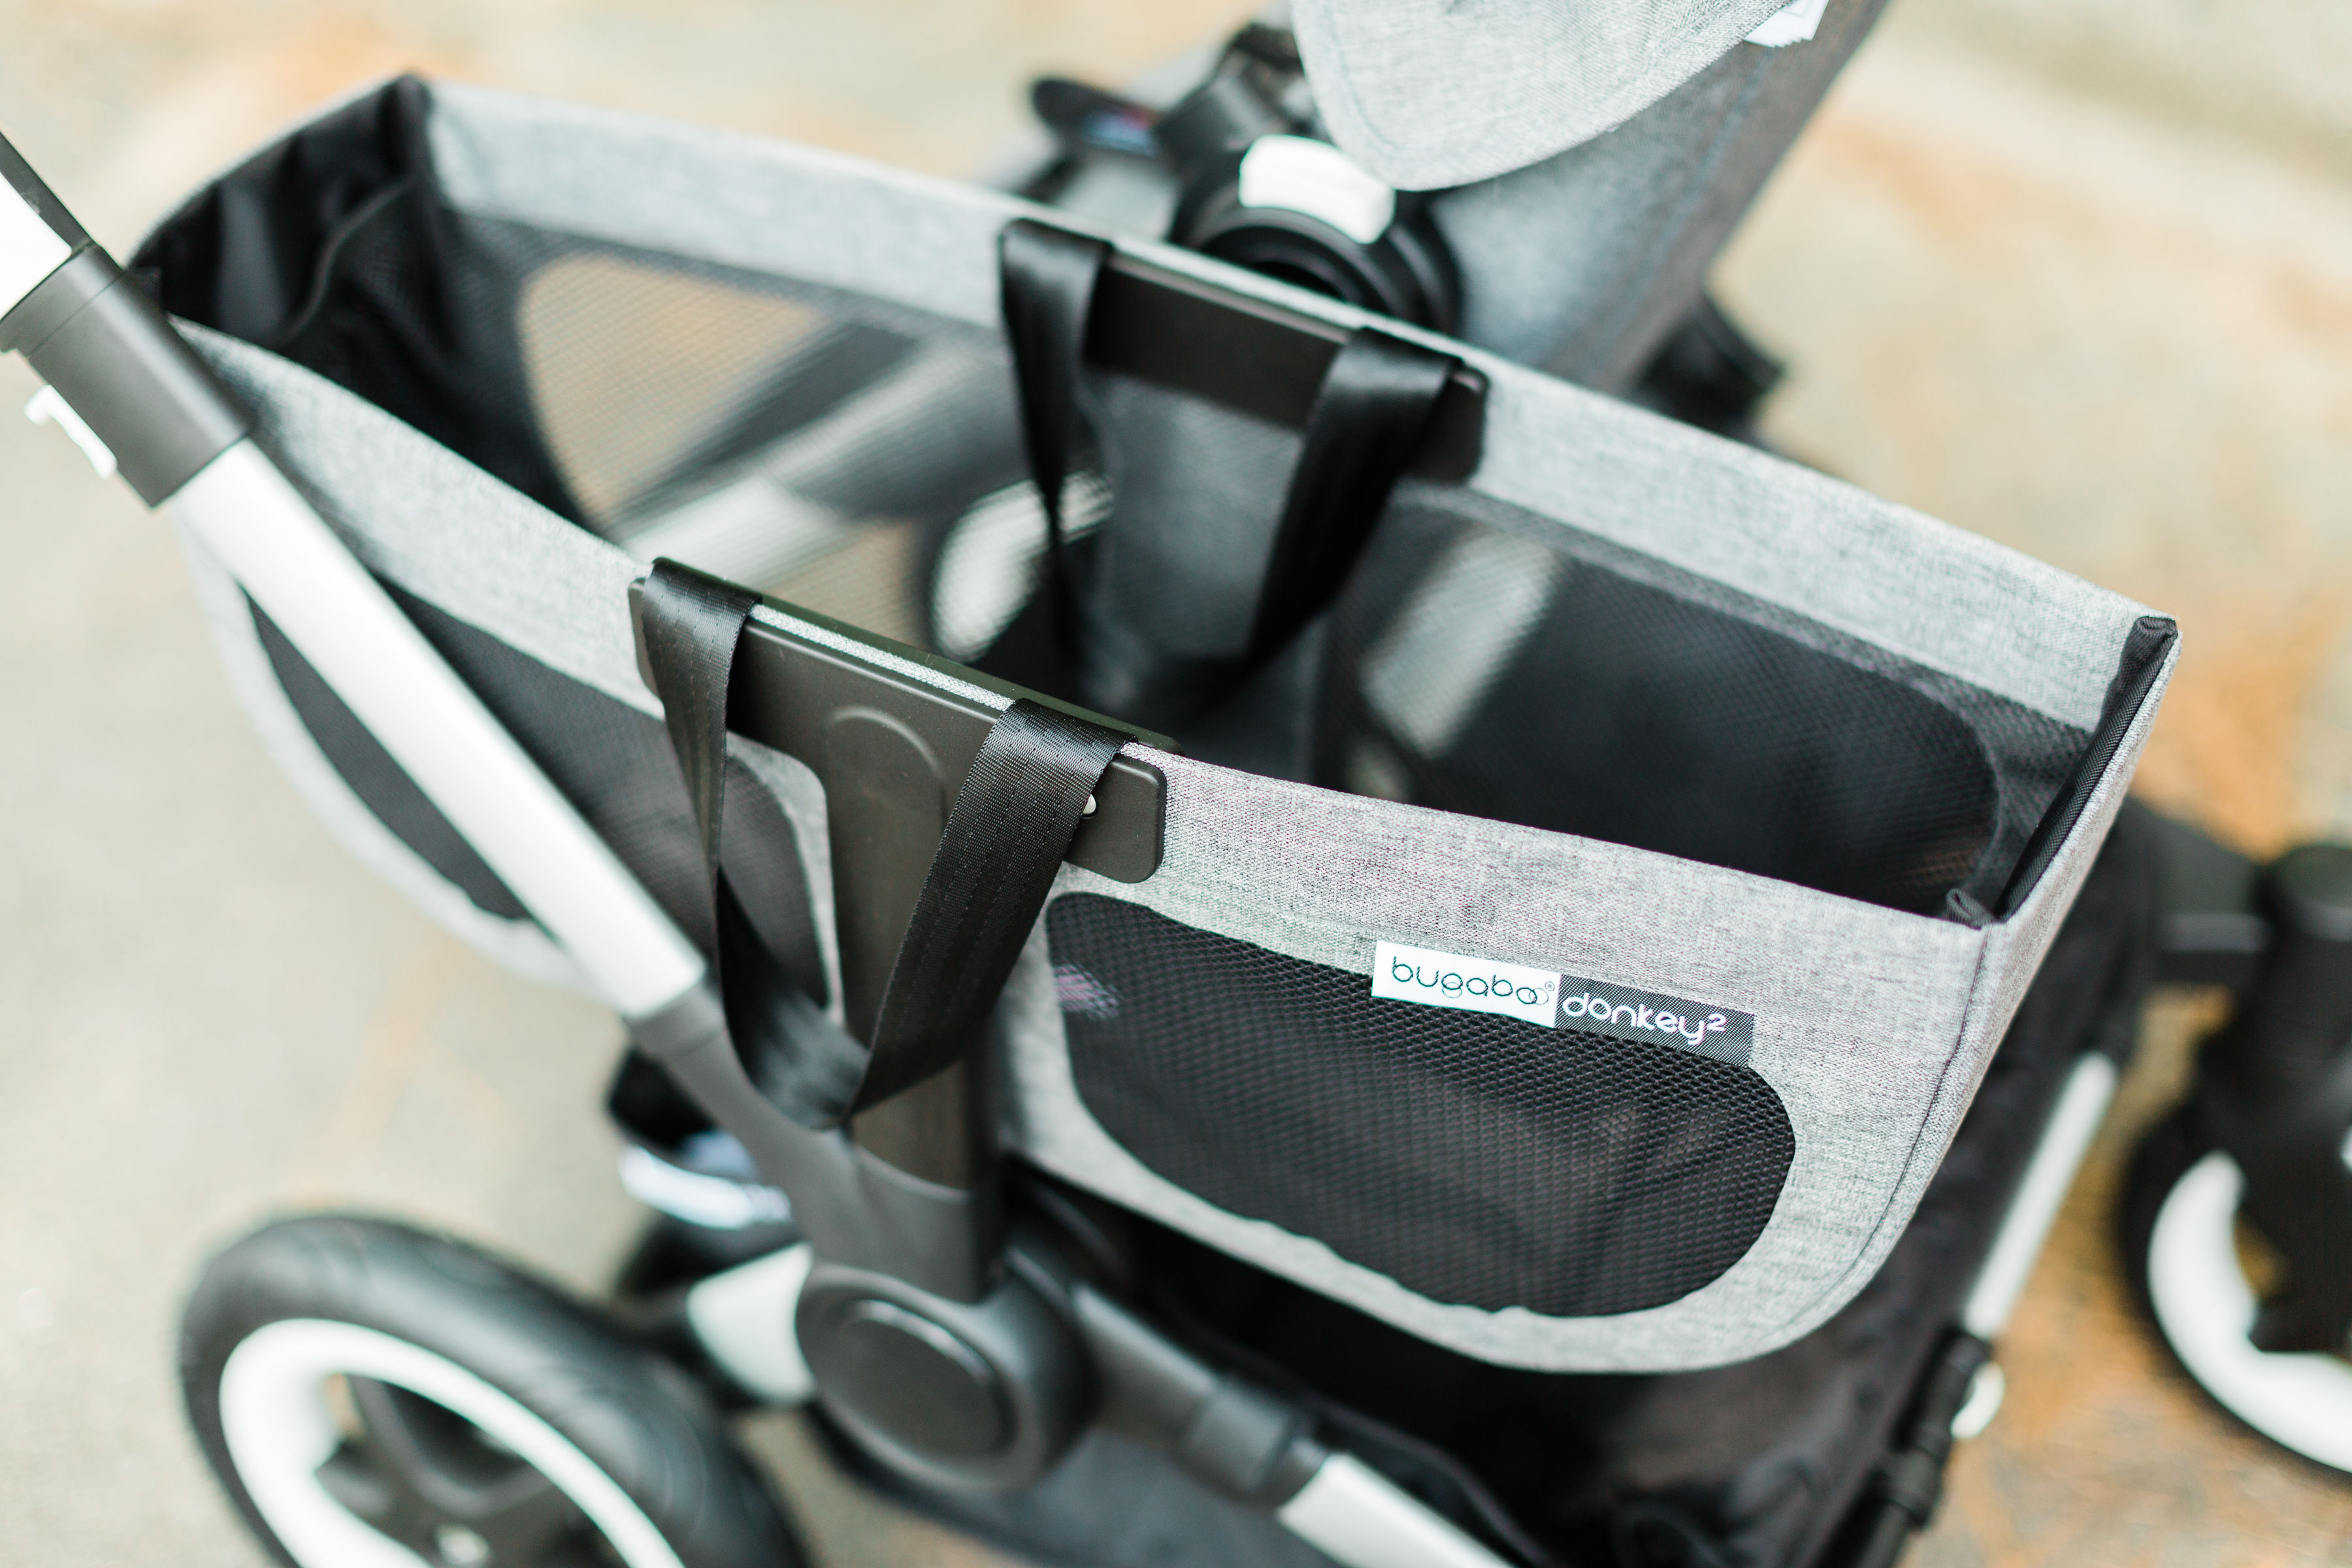 A detailed look at the all new 2019 Bugaboo Donkey2 + that can now accommodate 50 pounds per seat, plus a review of the stroller in Mono and Duo mode with the Comfort Wheeled Board plus our favorite accessories. | glitterinc.com | @glitterinc